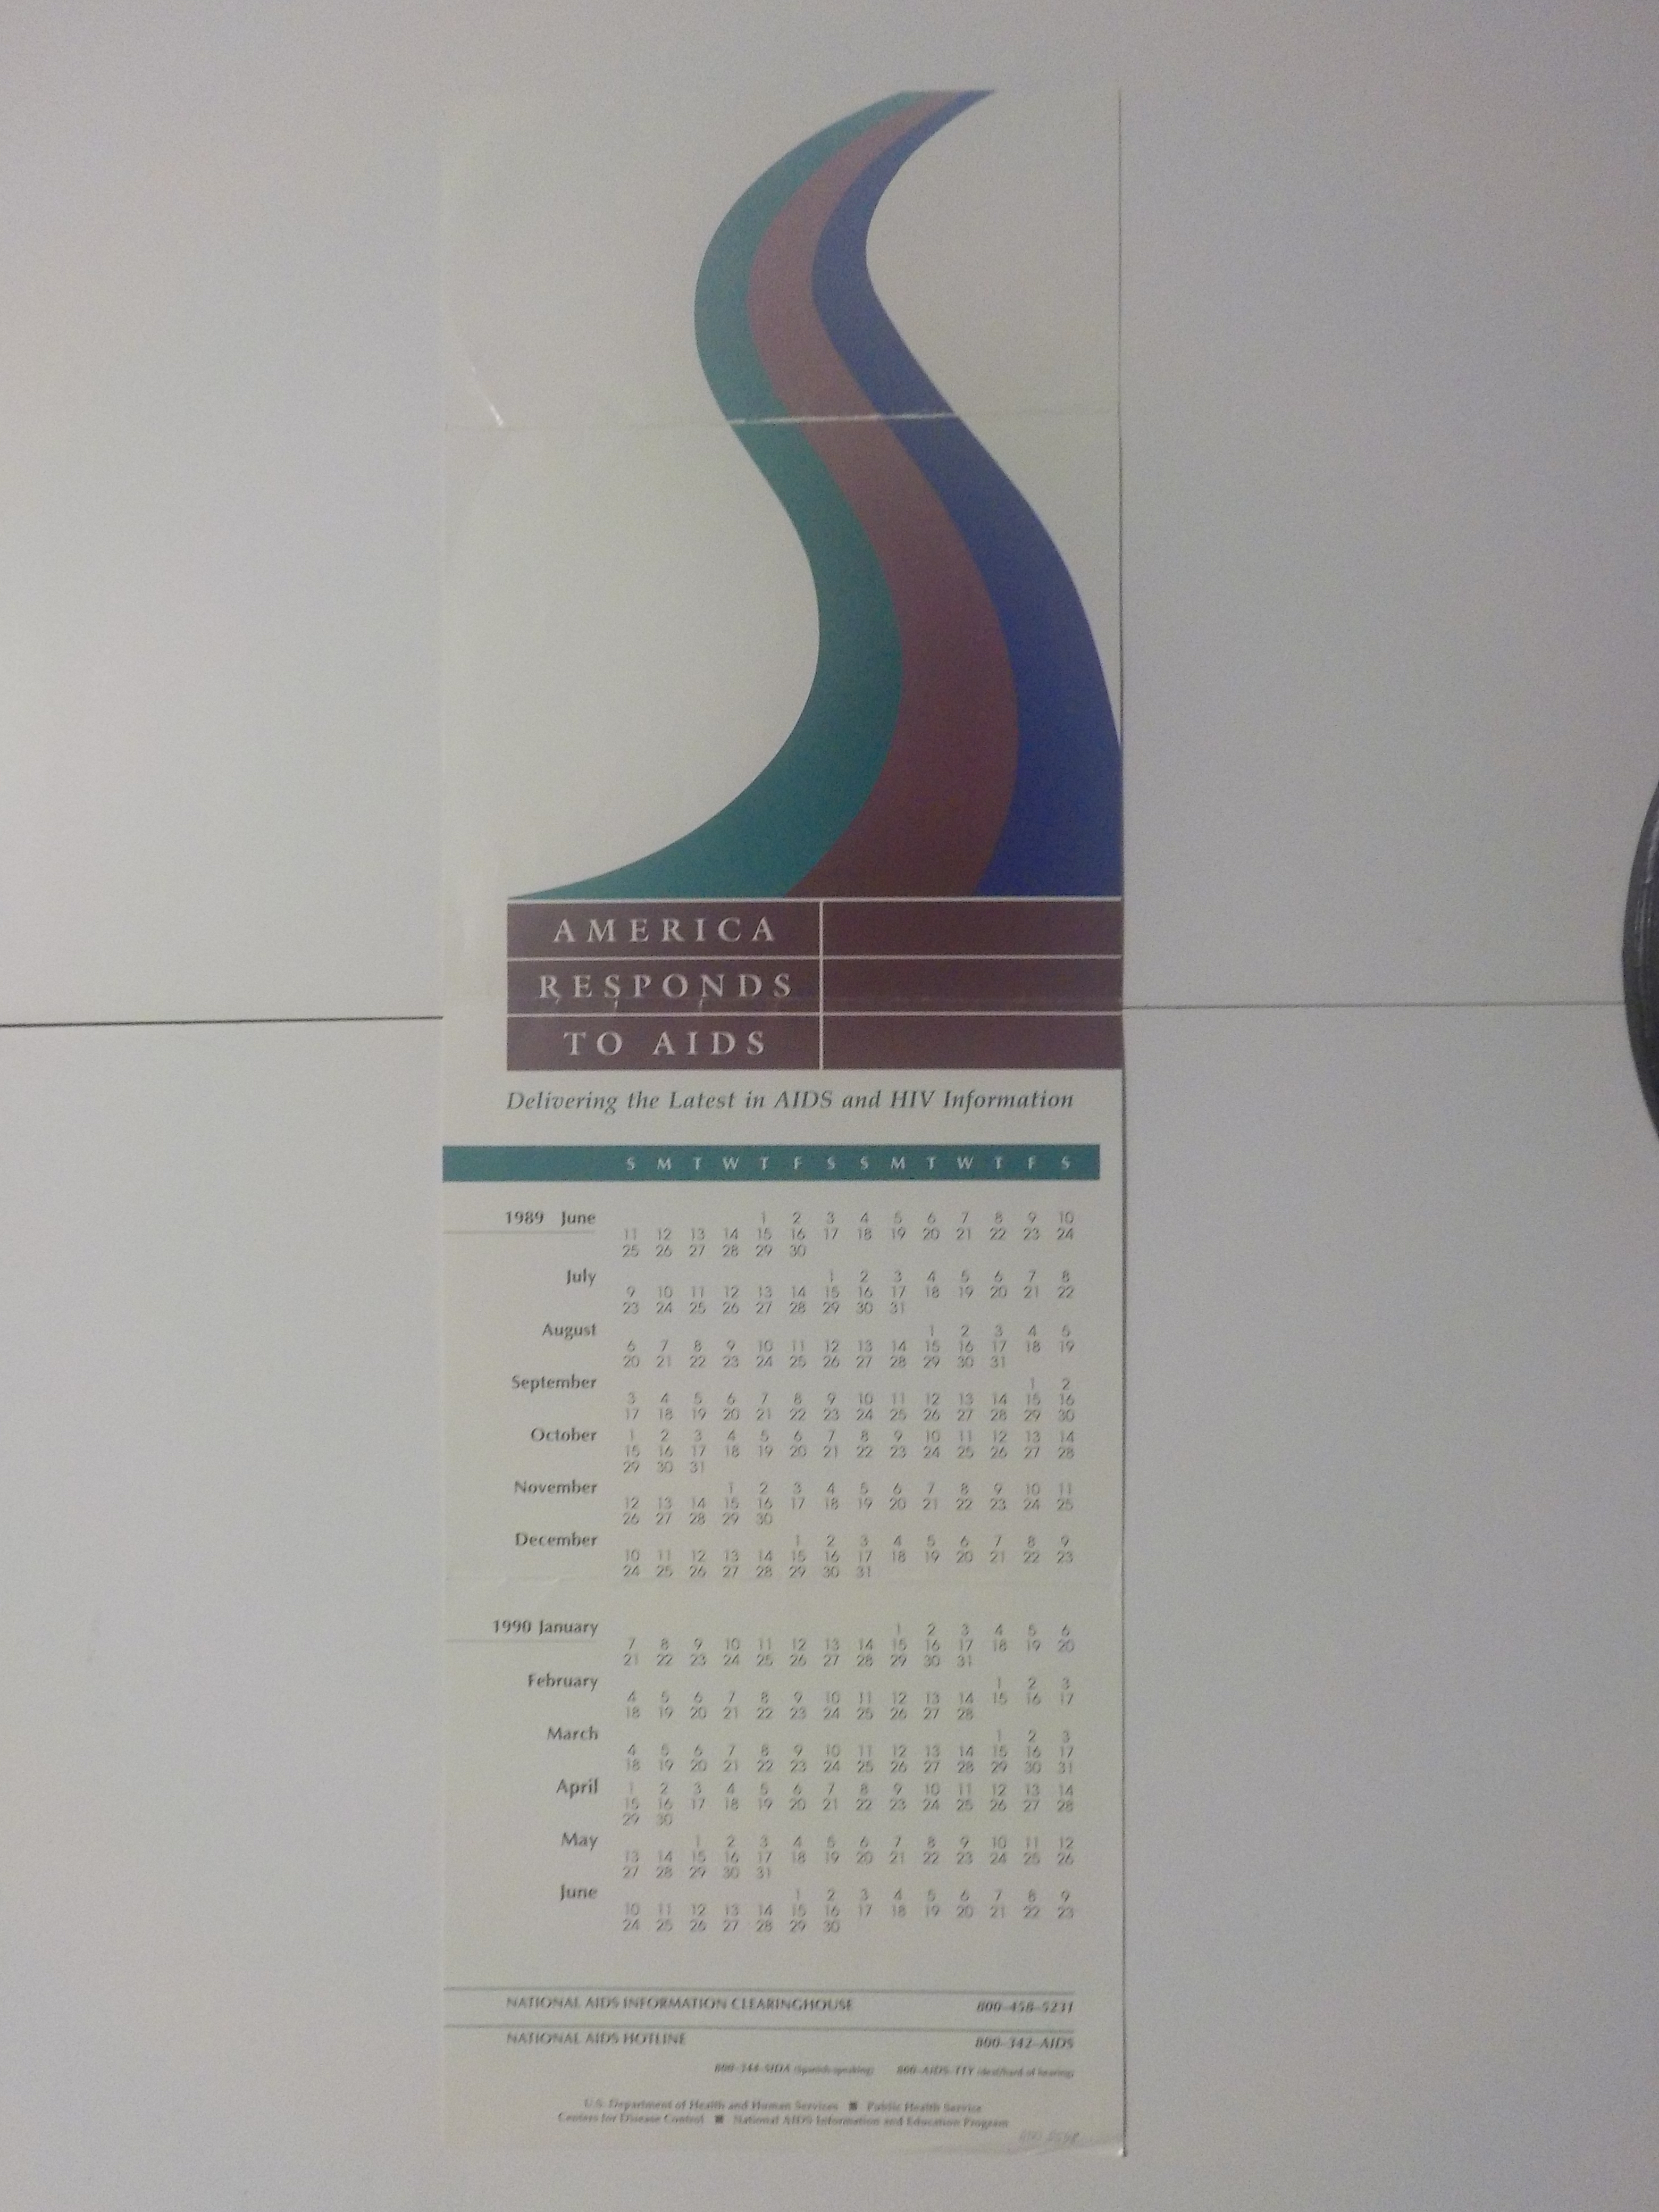 America responds to AIDS : delivering the latest in AIDS and HIV information [calendar for June 1989 through June 1990]